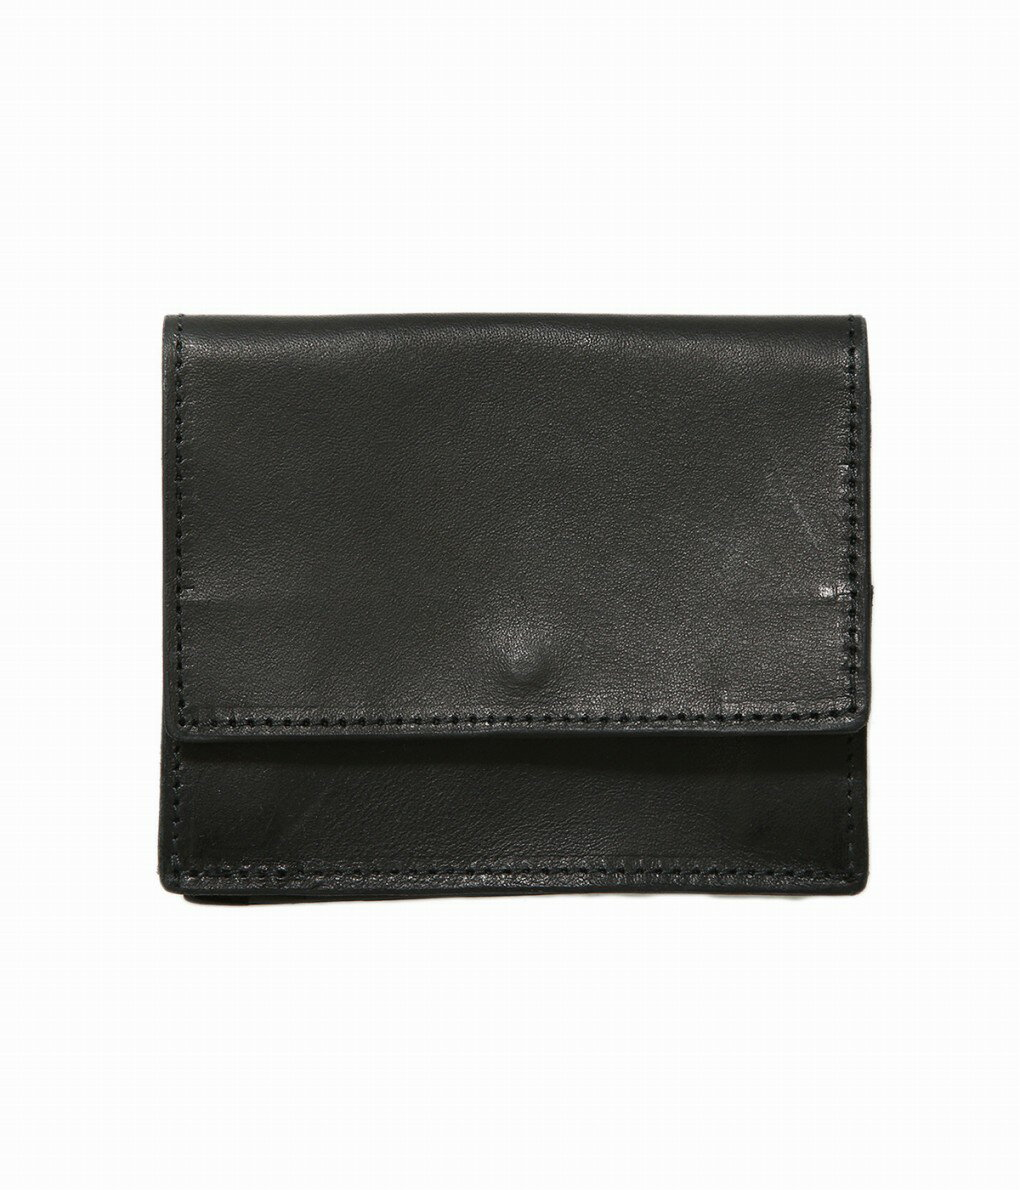 財布・ケース, メンズ財布 GUIDI ONLY ARK DOUBLE WALLET JAPAN WT01JP RIPBJB